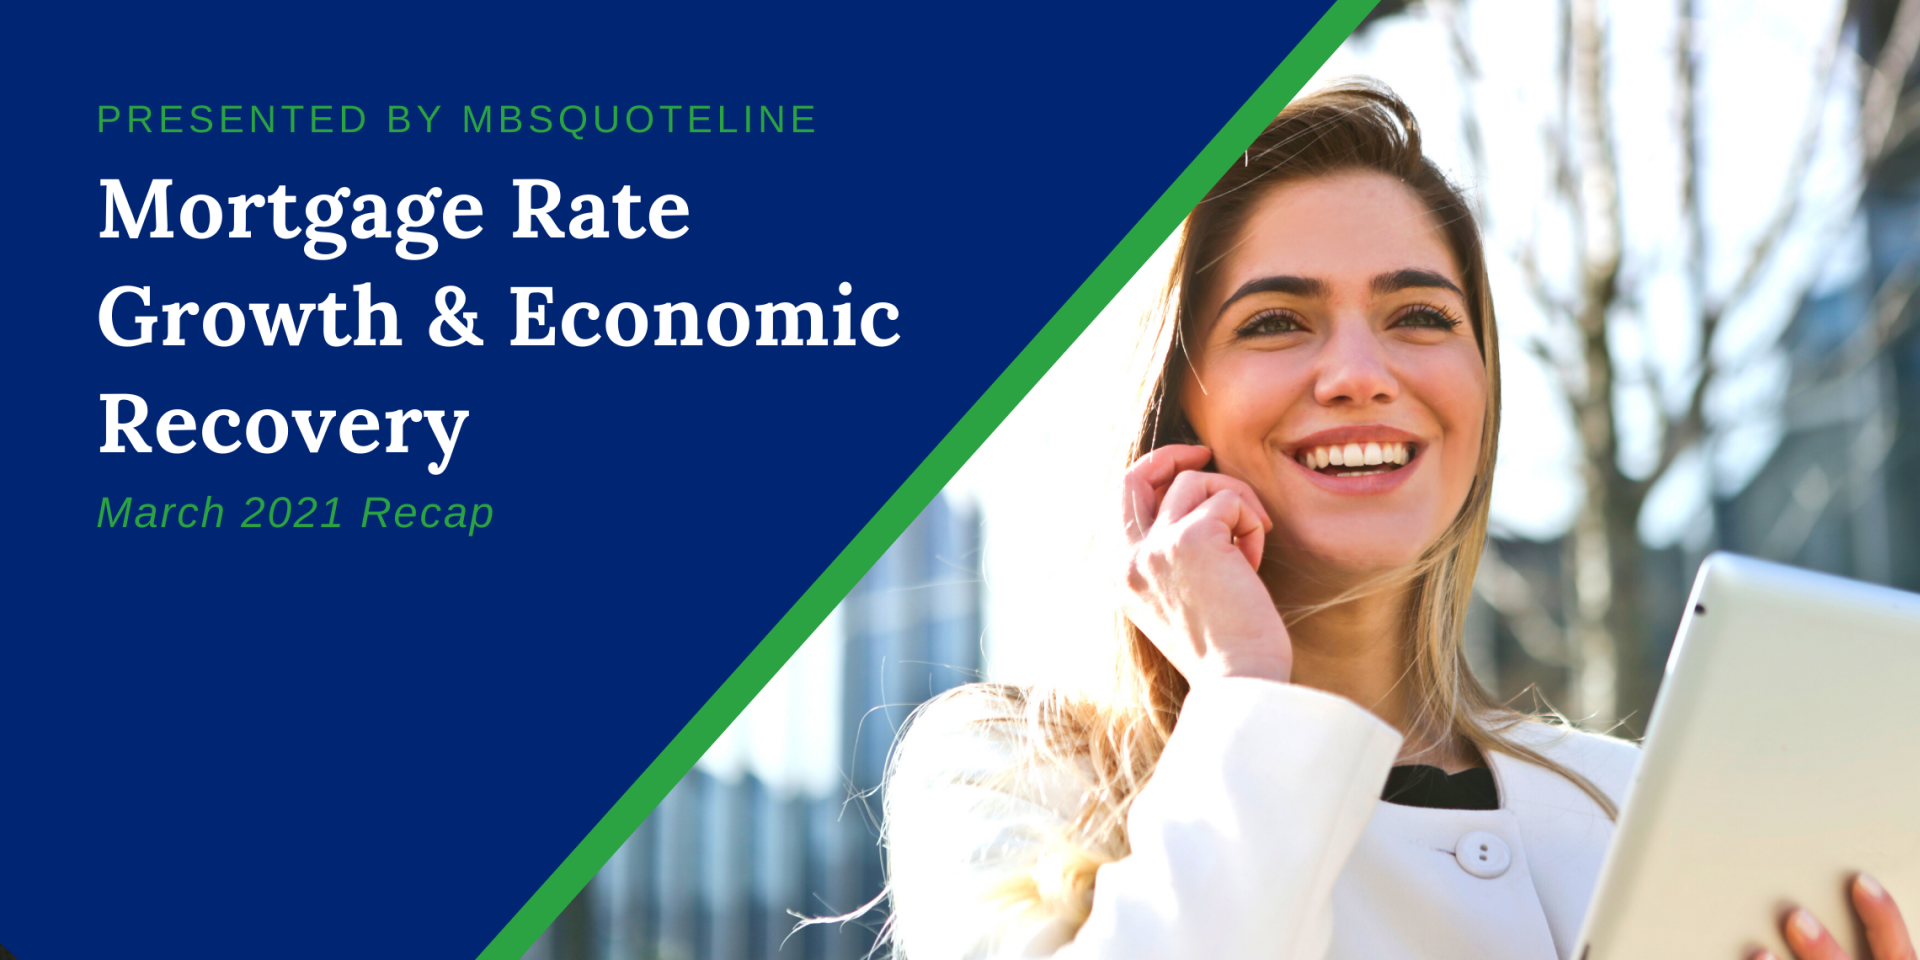 mortgage rate growth economic recovery mbsquoteline march 2021 recap